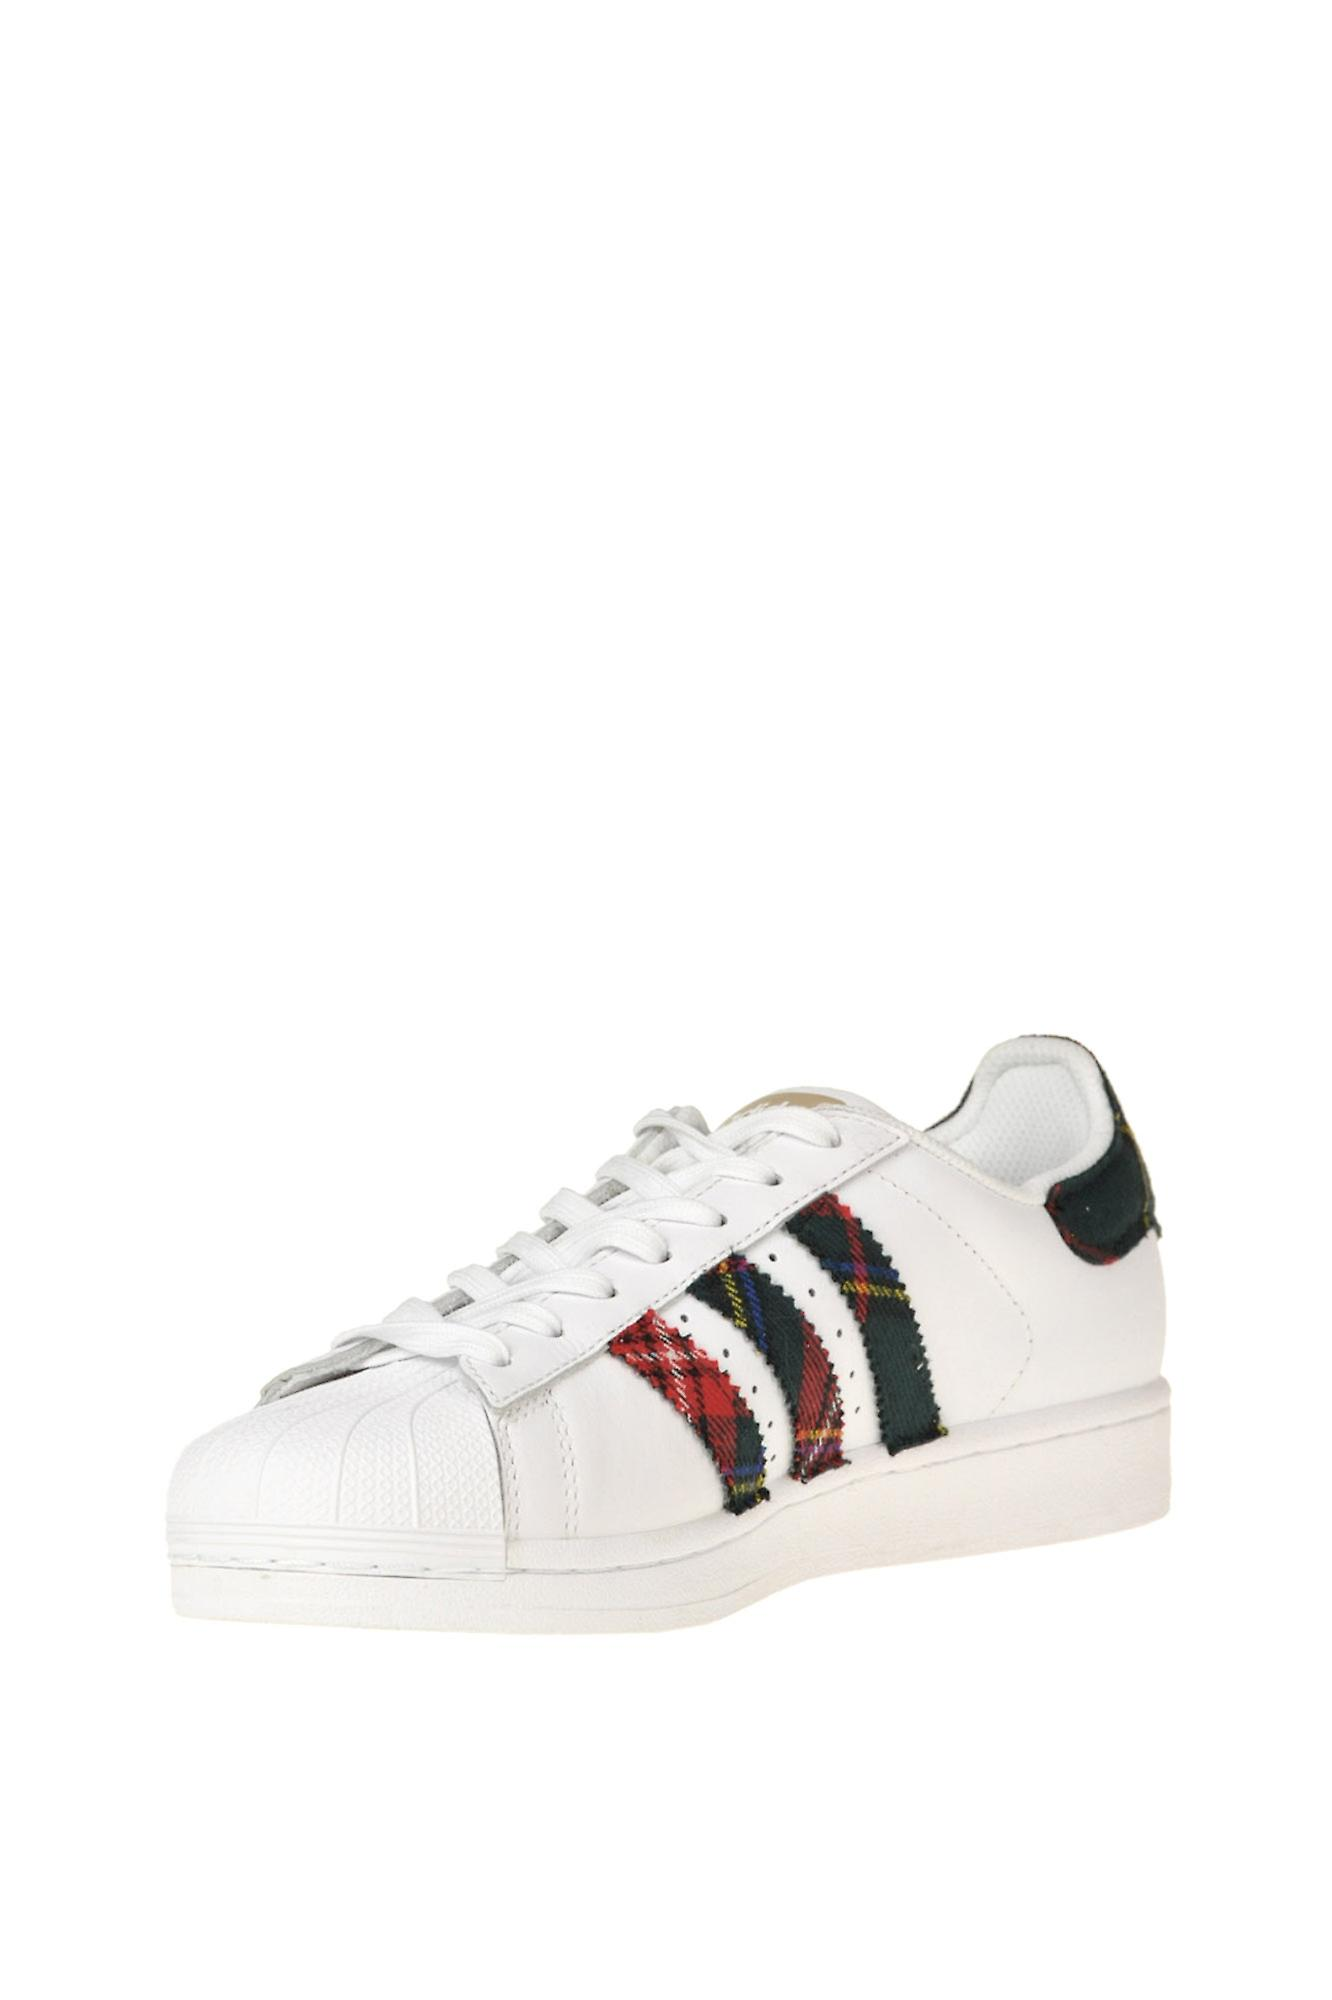 Adidas By Dressed Ezgl142008 Women's White Leather Sneakers